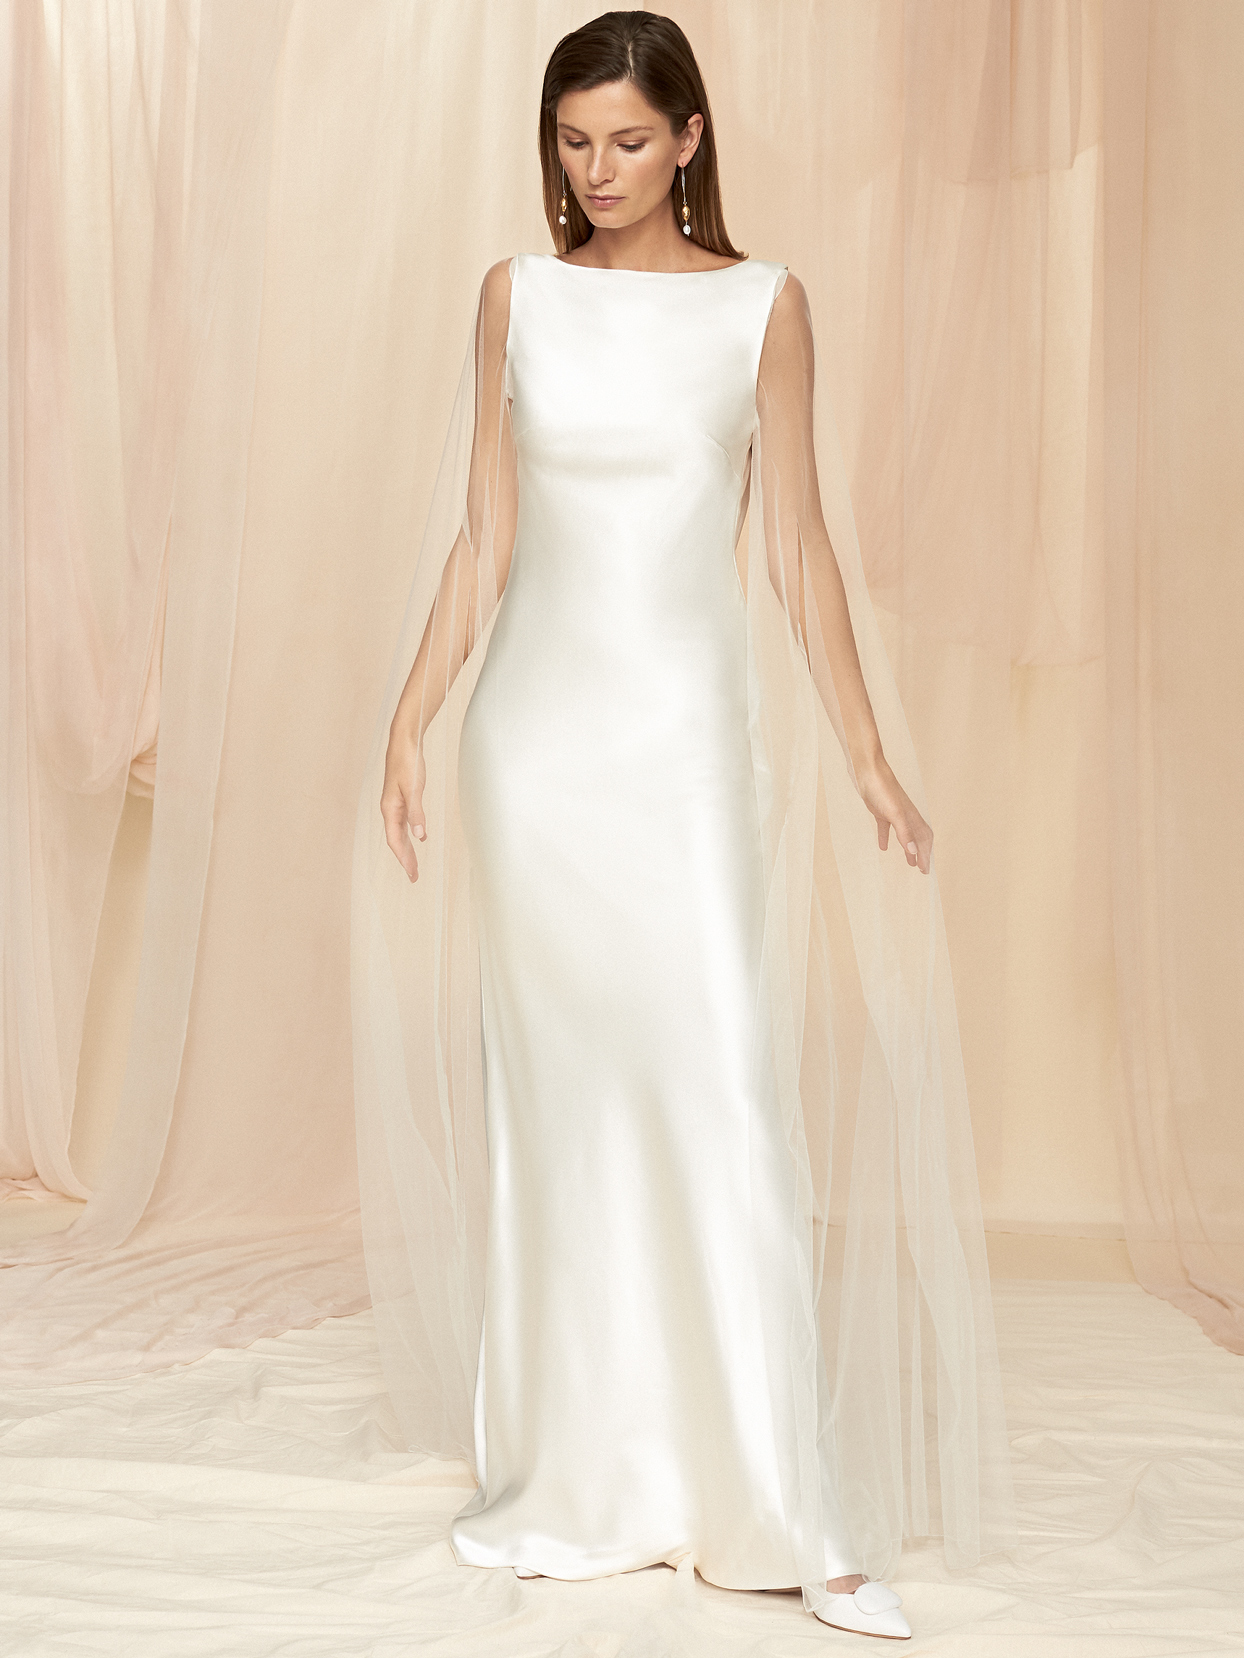 Savannah Miller high neck sleeveless sheath wedding dress fall 2020